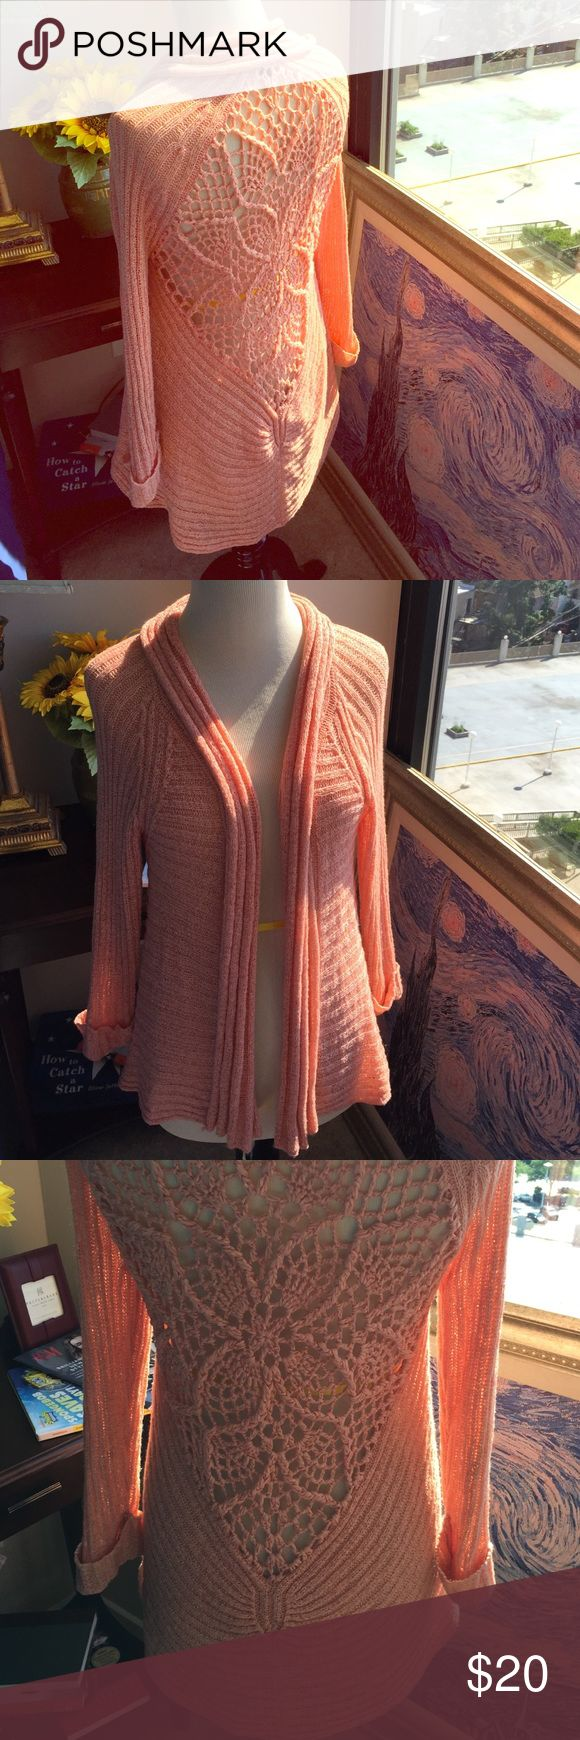 Coral cardigan, very fun for beach or casual wear Lovely coral cardigan great for beach or as a cardigan Sweaters Cardigans